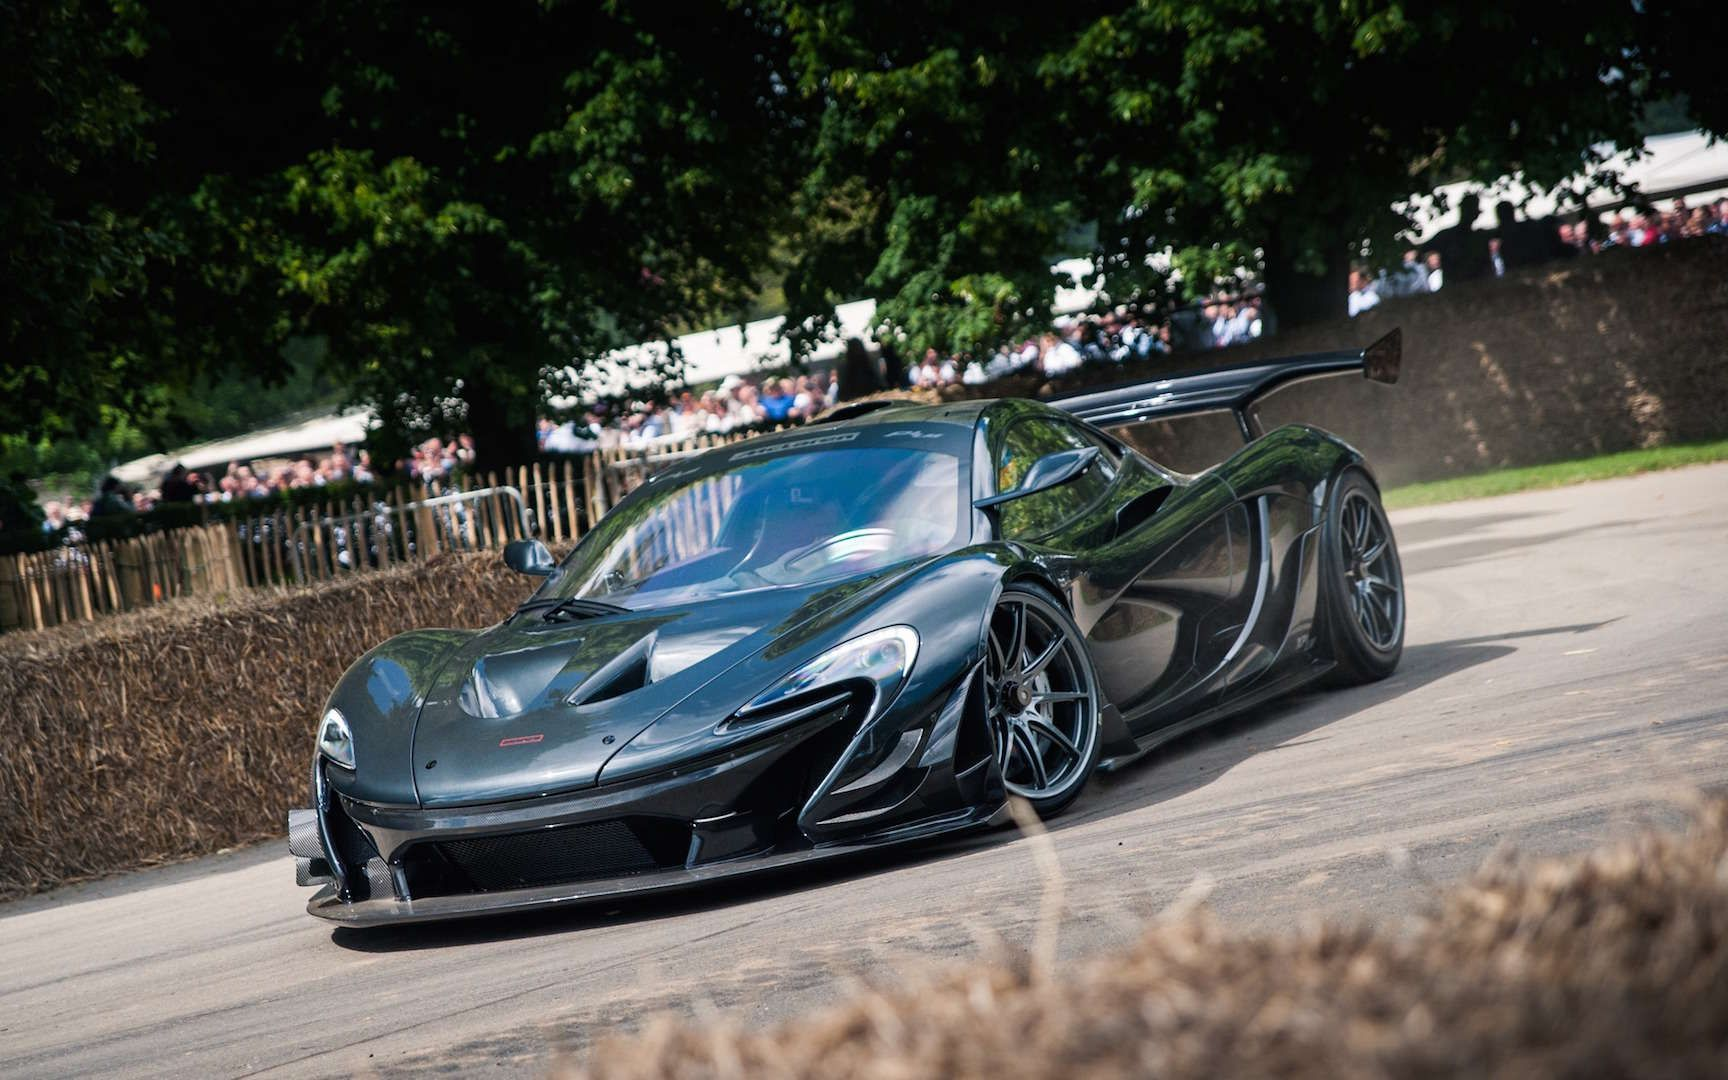 Top 10 Most Expensive Cars In The World In 2017 Expensive Cars Mclaren P1 Best Luxury Cars